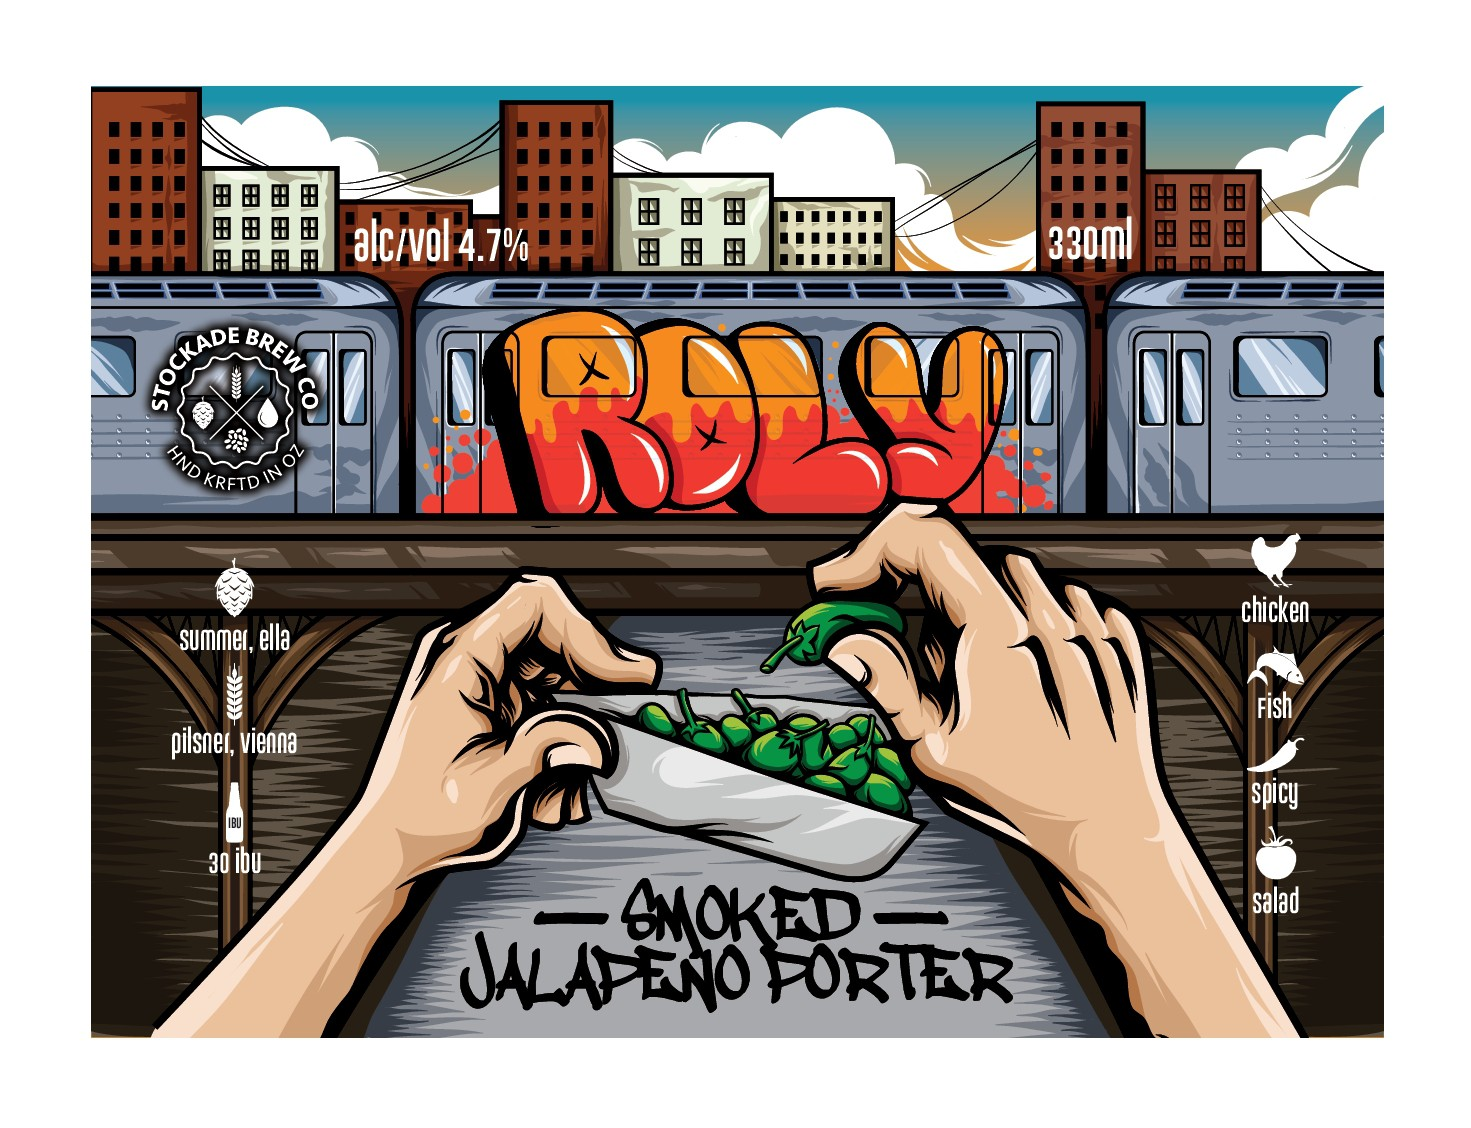 """Create a CRAFT BEER graphic for """"Roly"""" Smoked Jalapeño Porter"""